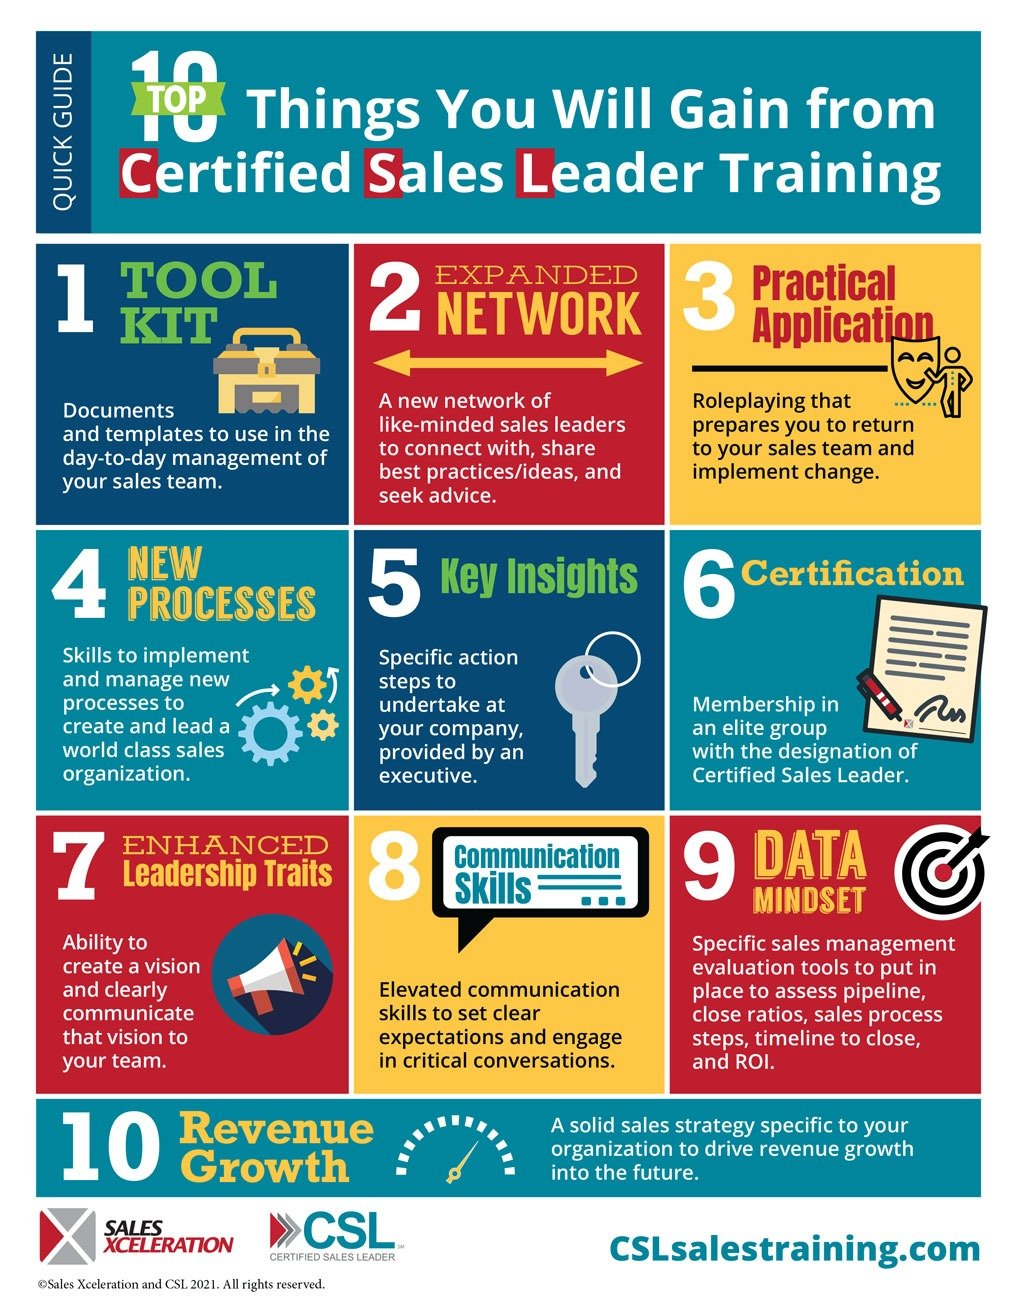 Why Become CSL Certified